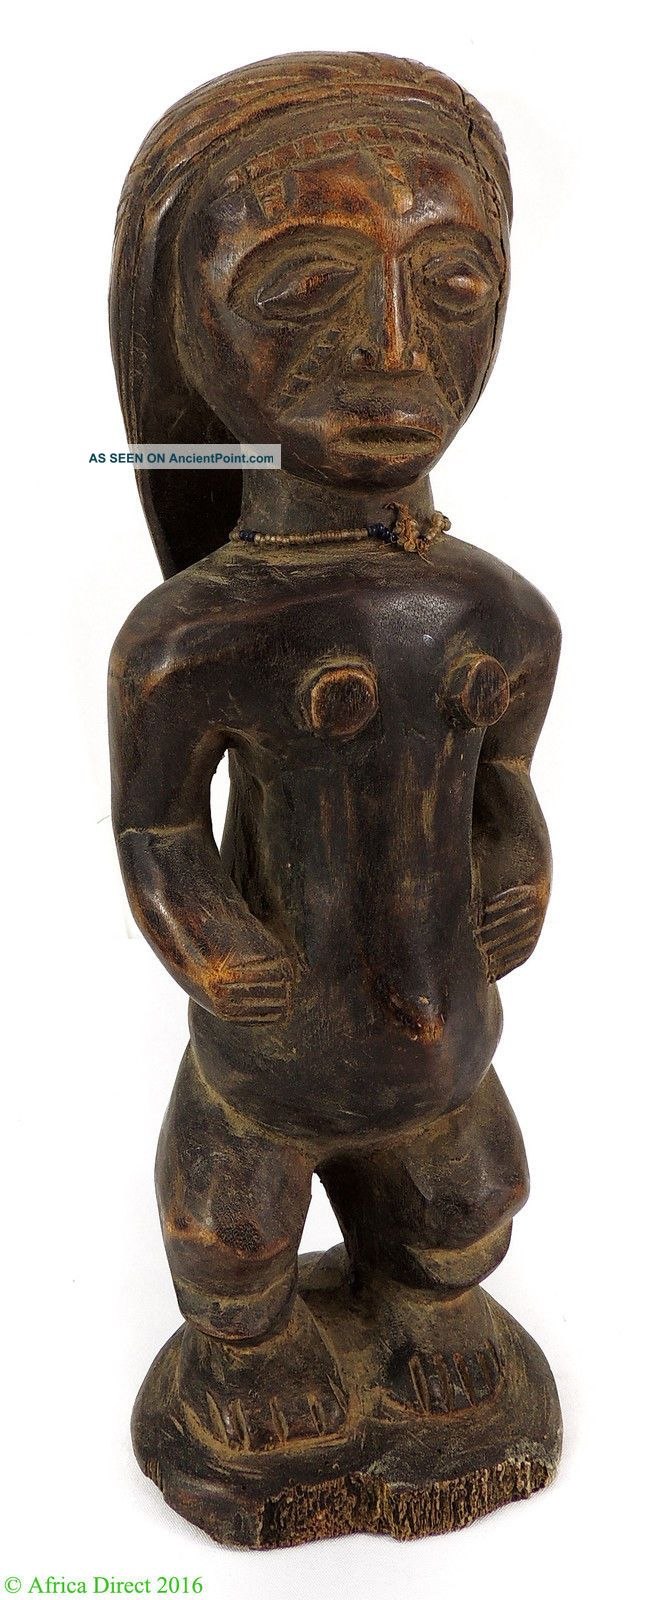 Tabwa Female Statue Congo African Art 15 Inch Sculptures & Statues photo